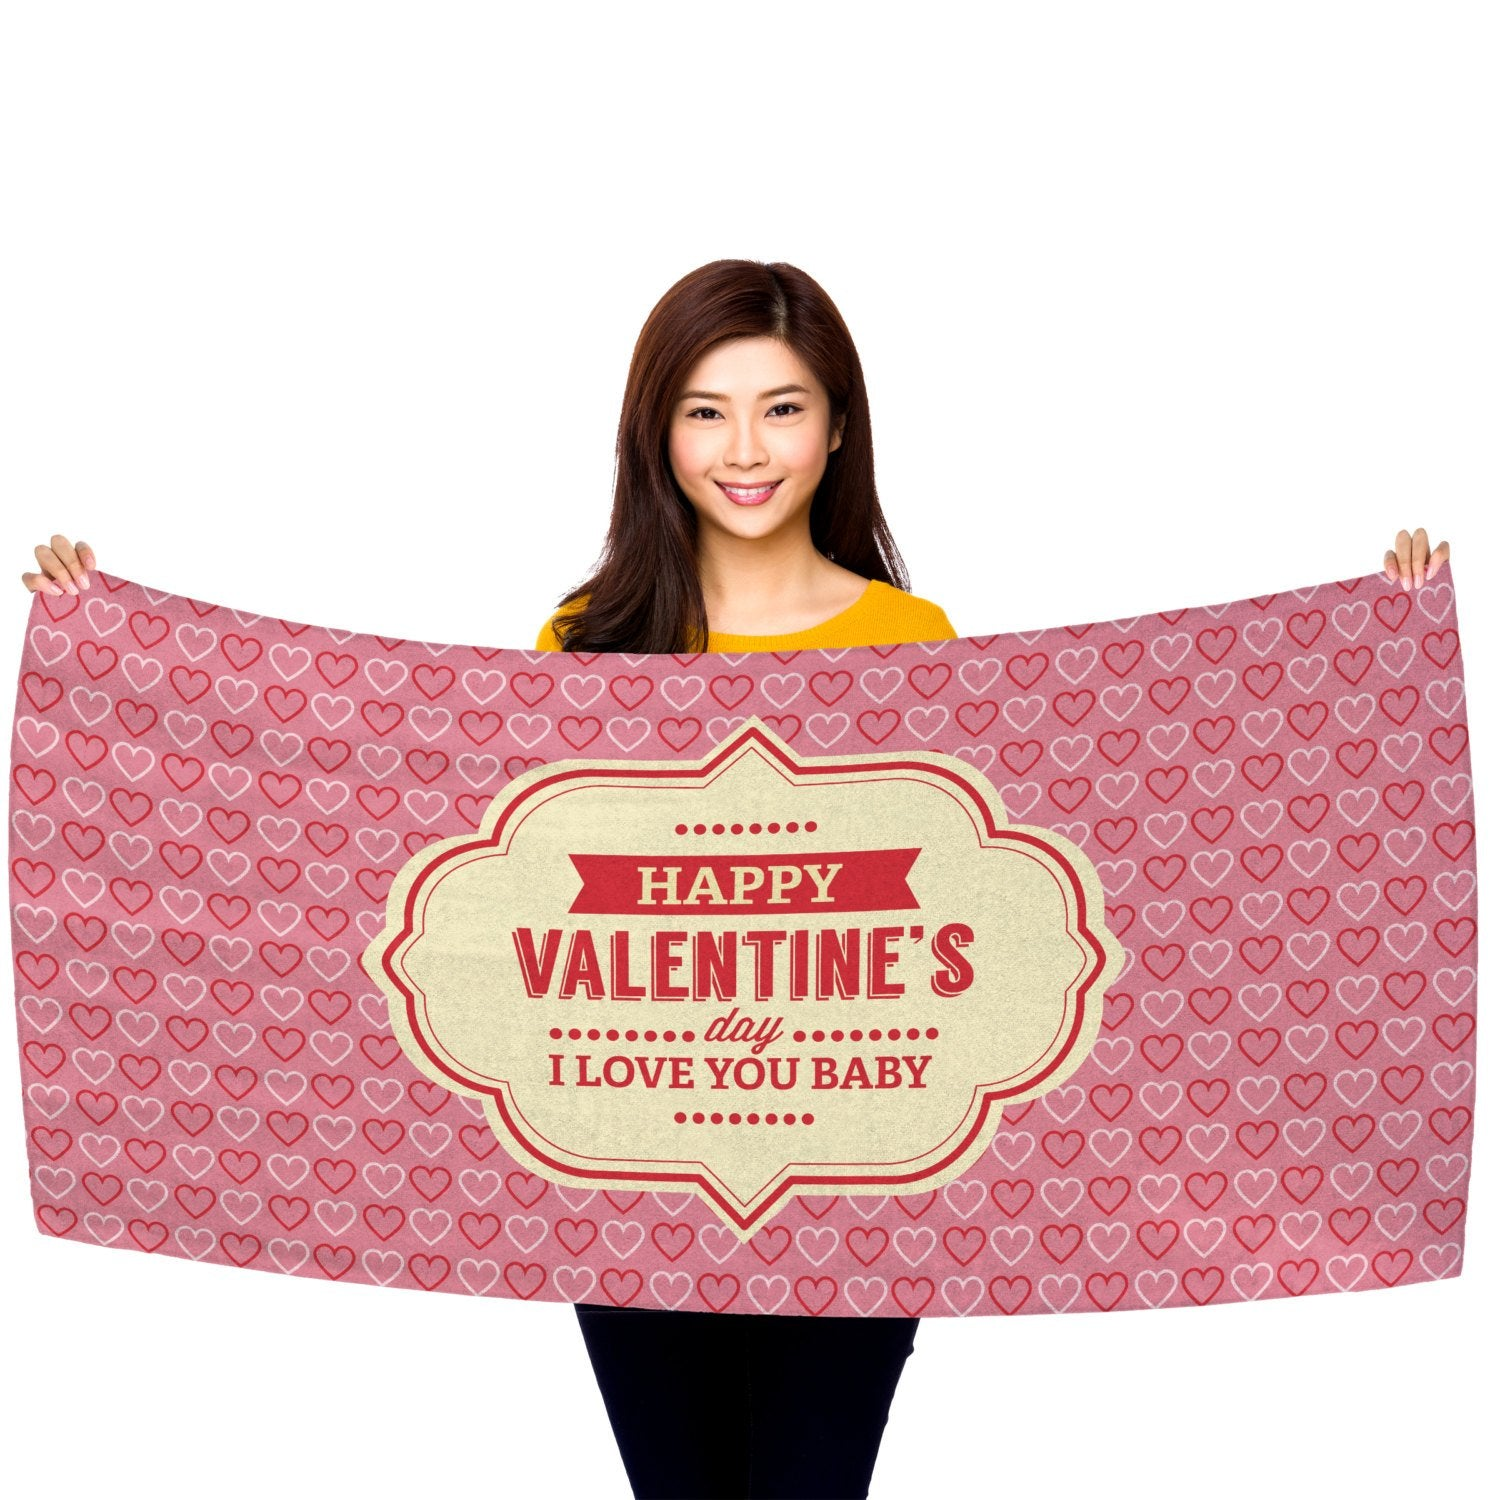 "Valentine's Day - I Love You Baby 30"" x 60"" Microfiber Beach Towel"